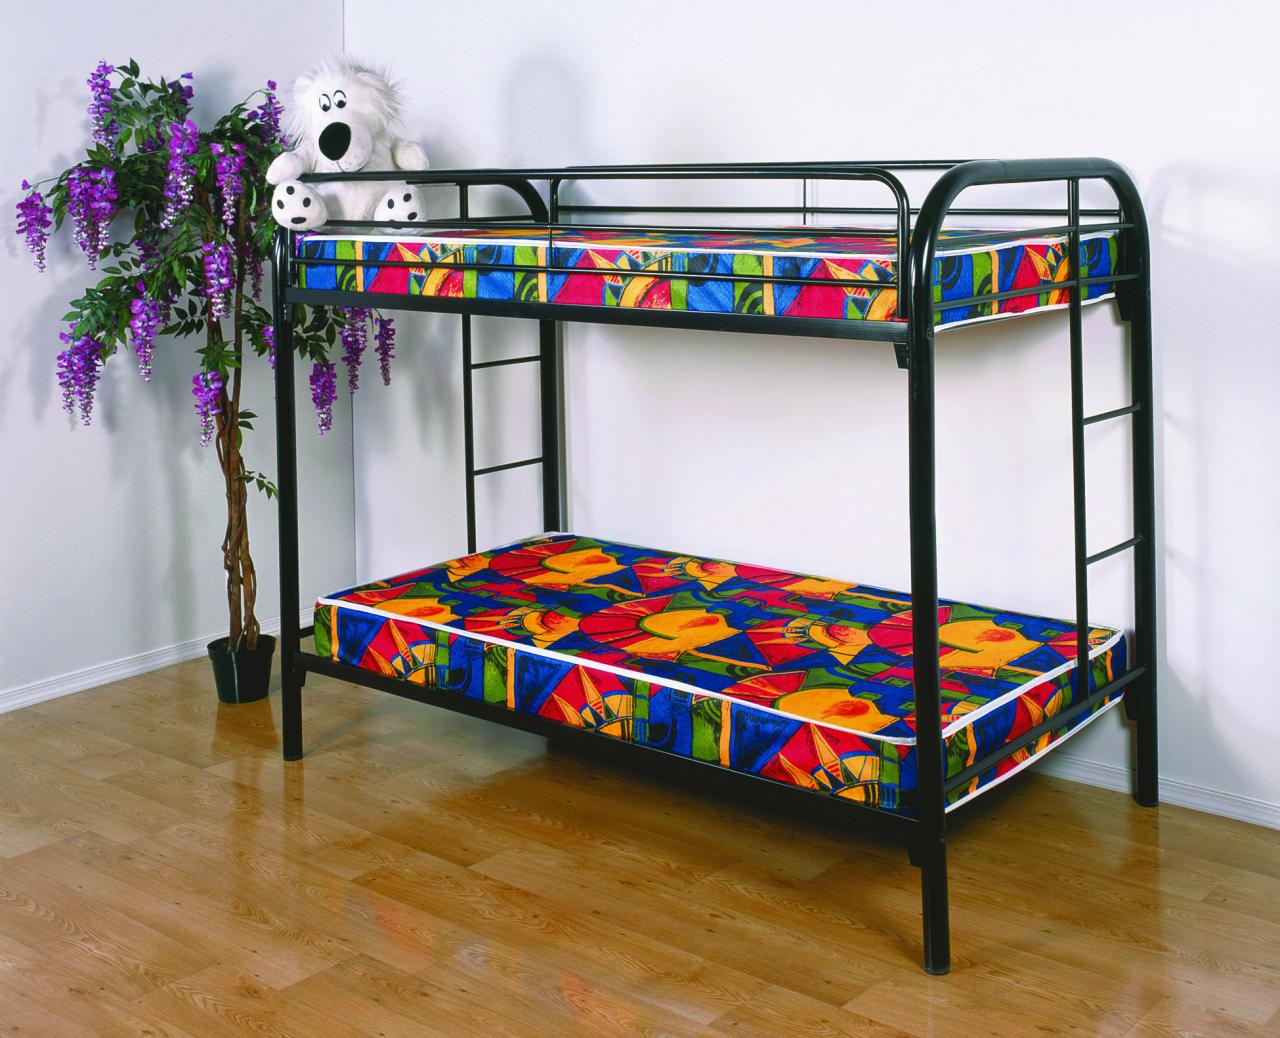 كتيب مخطط النعال Bunk Bed Mattress Loudounhorseassociation Org